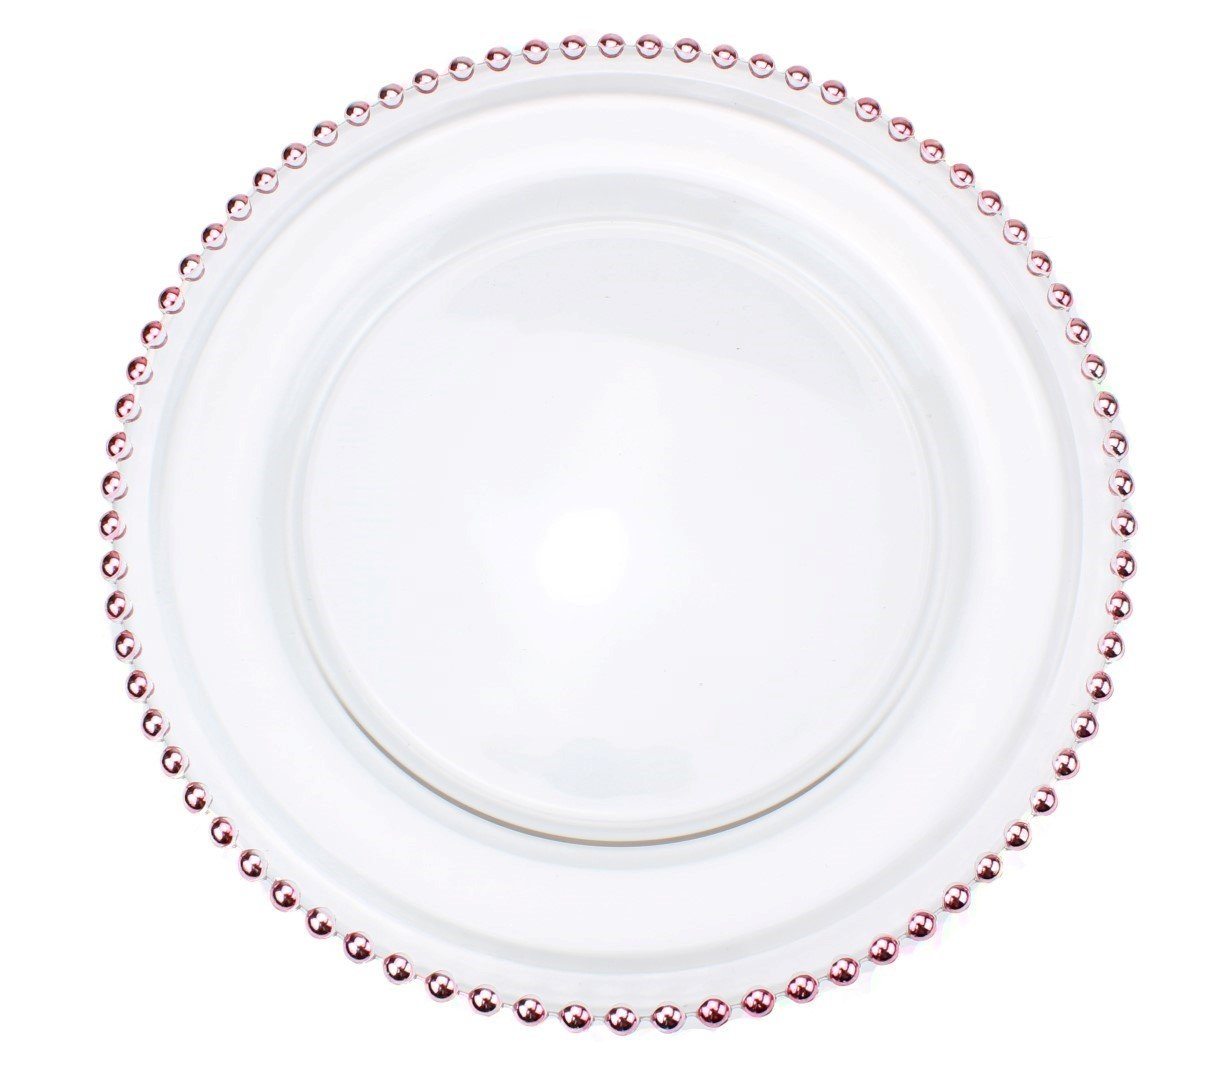 Ms Lovely Clear Glass Charger 12.6 Inch Dinner Plate With Beaded Rim - Set of 4 - Rose Gold